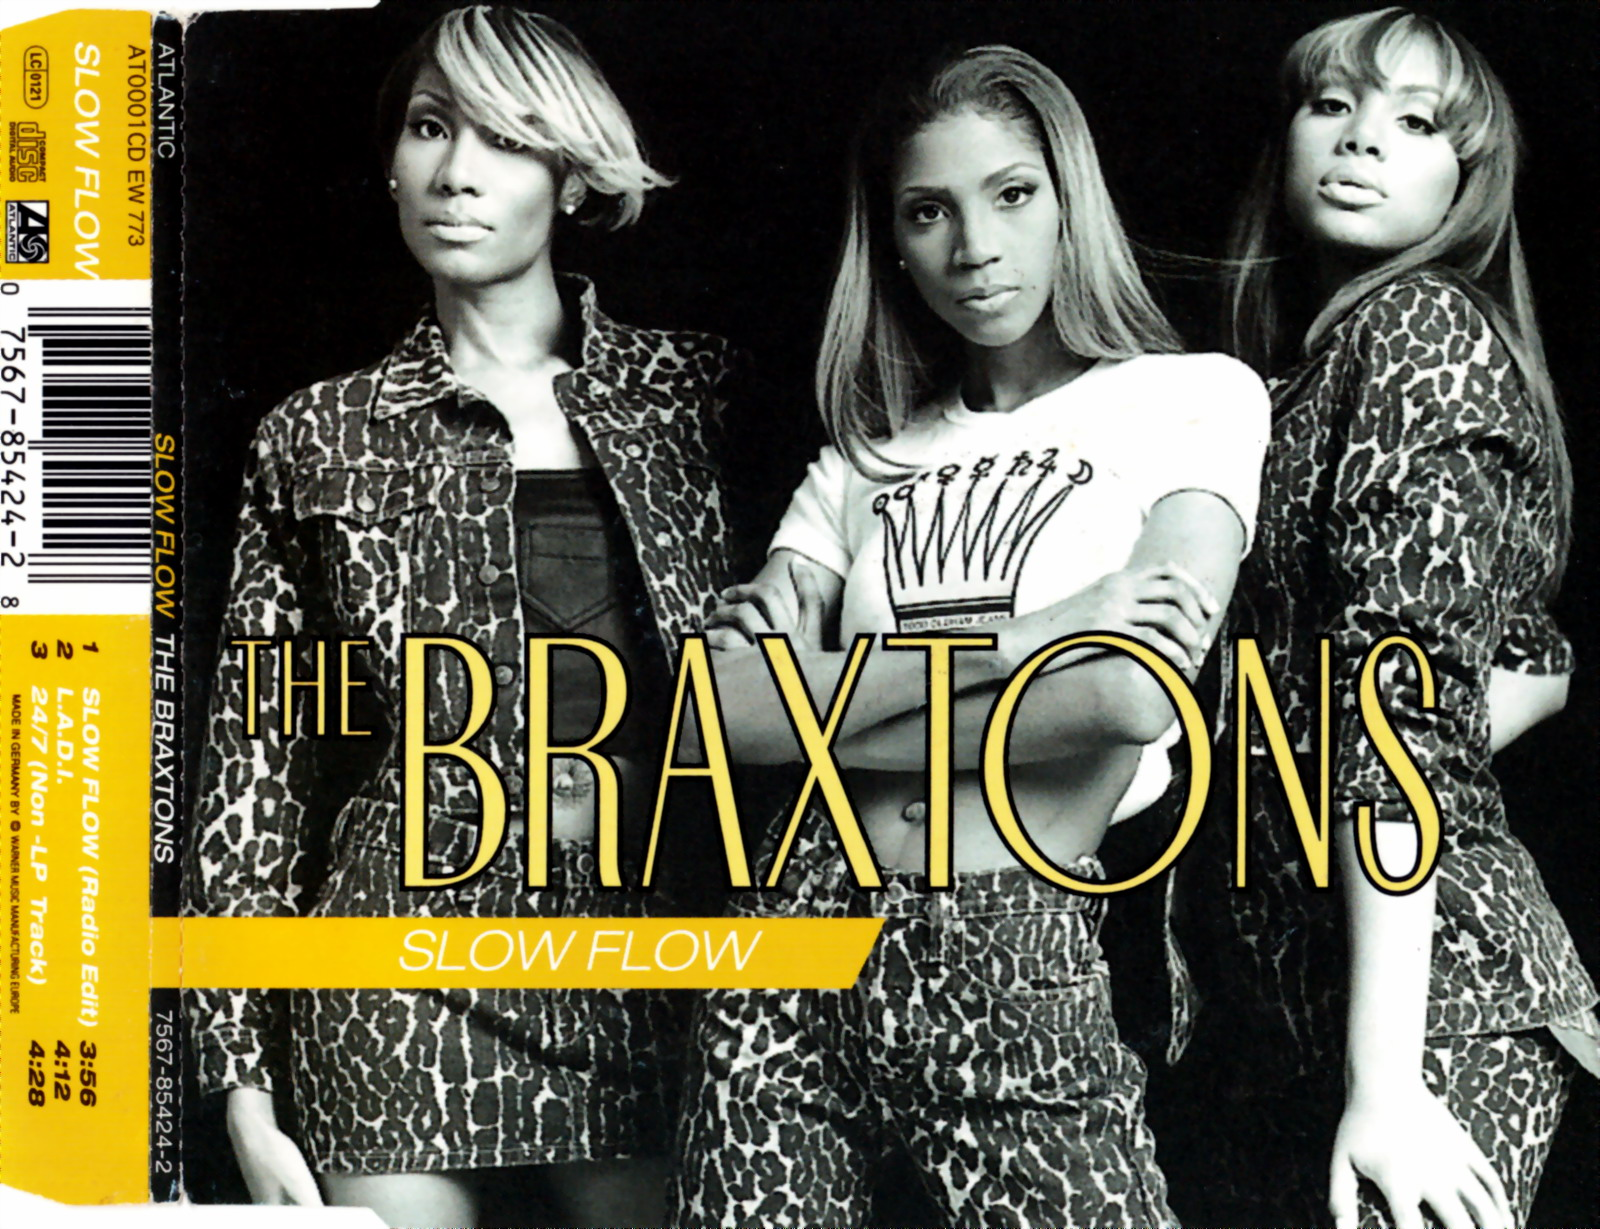 Only Love Braxtons Mp3 Download